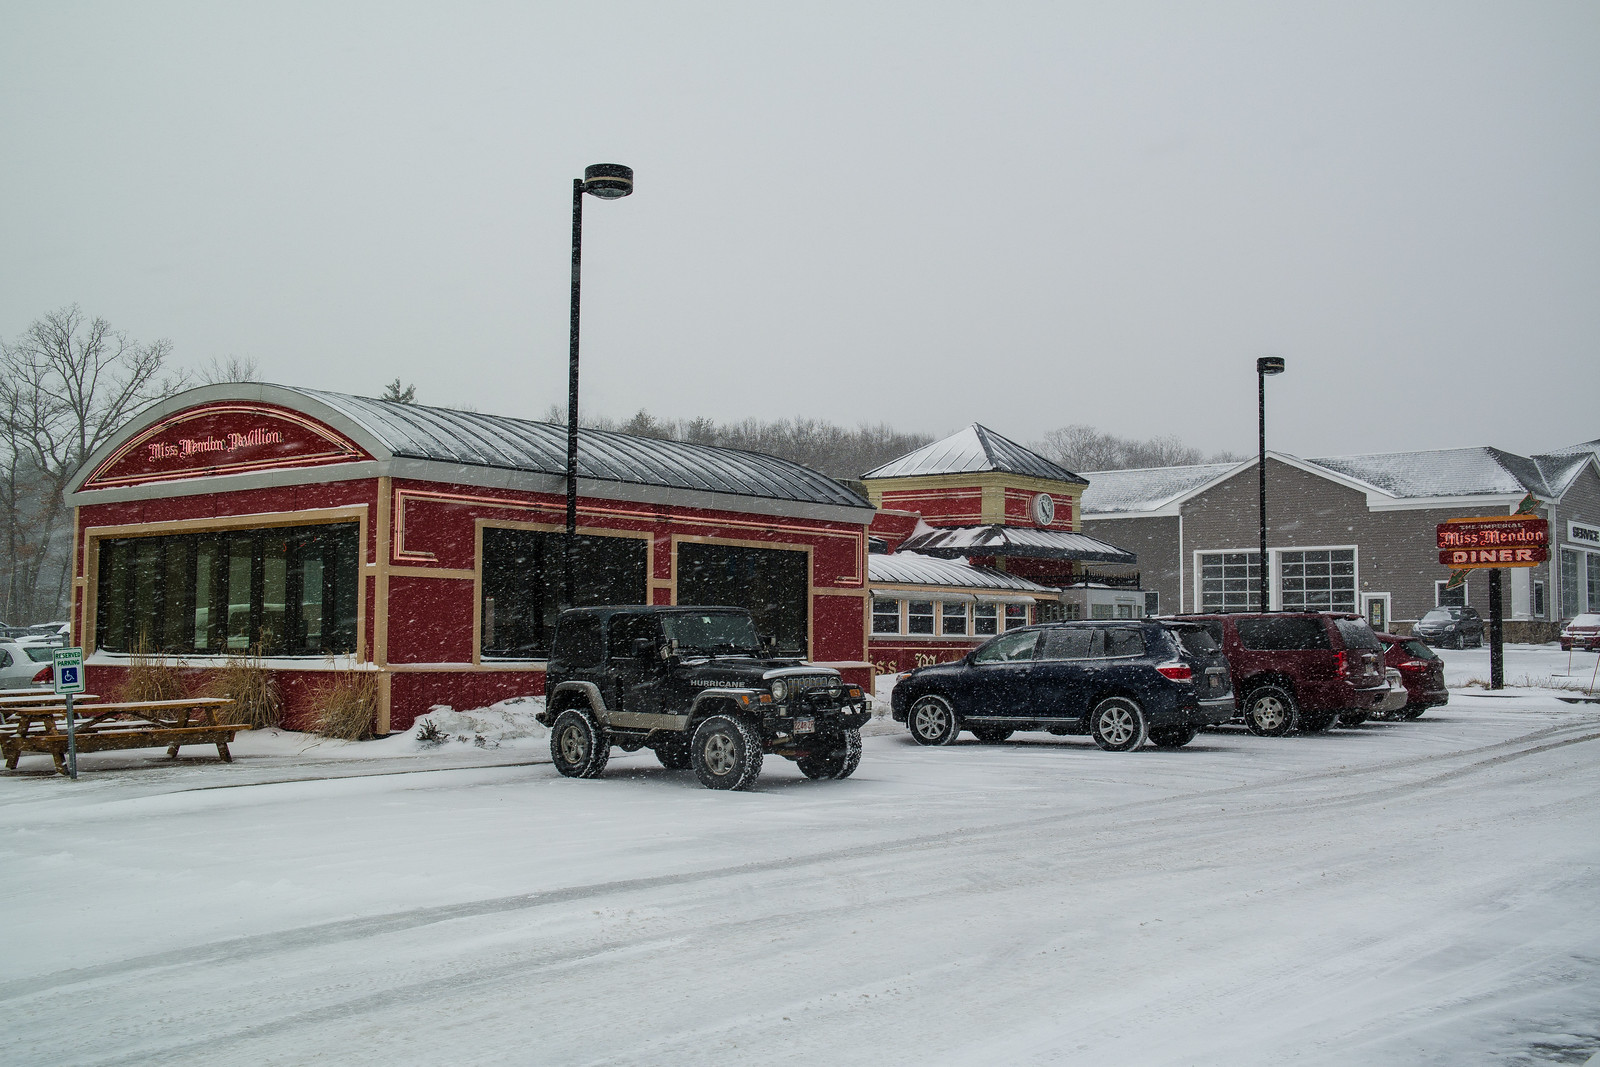 Snowy Miss Mendon Diner